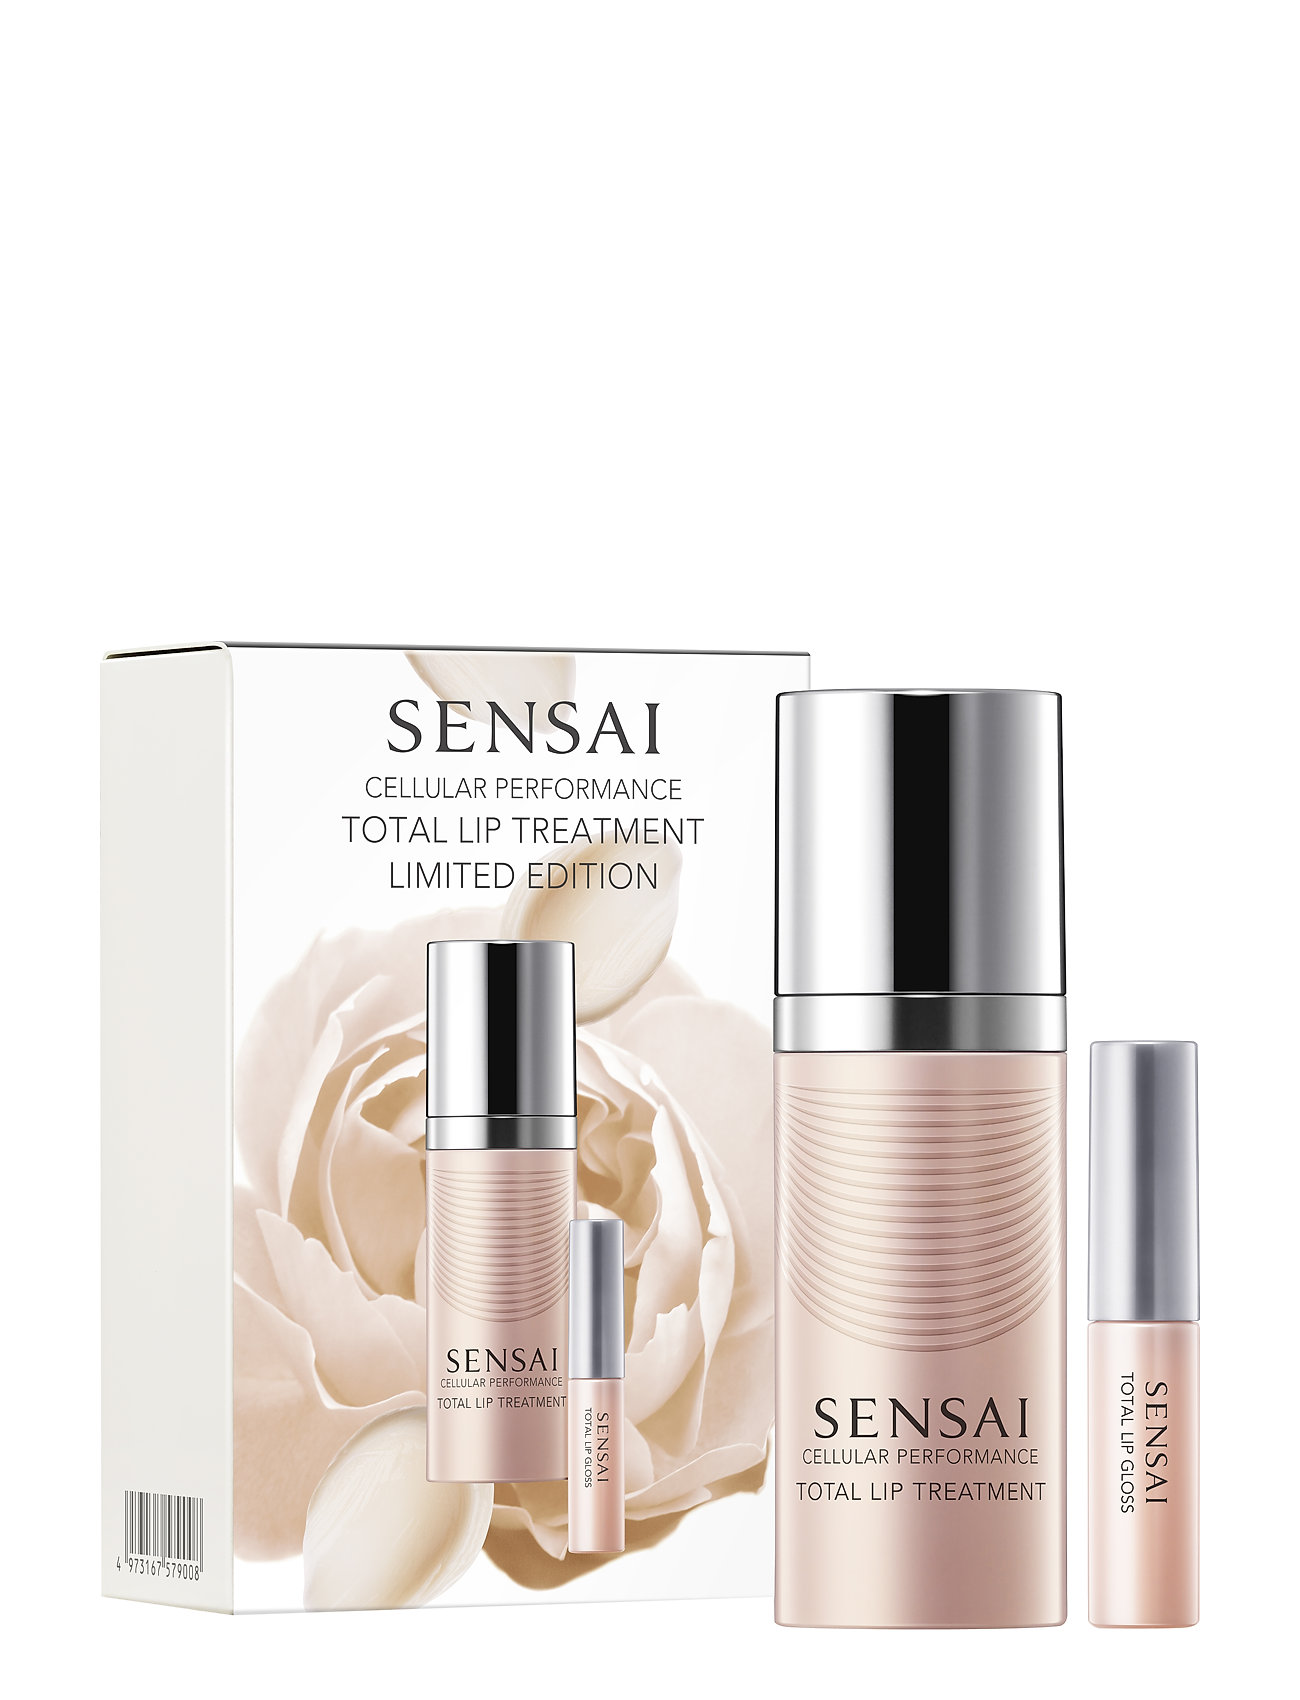 SENSAI Cellular Performance Total Lip Treatment Limited Set